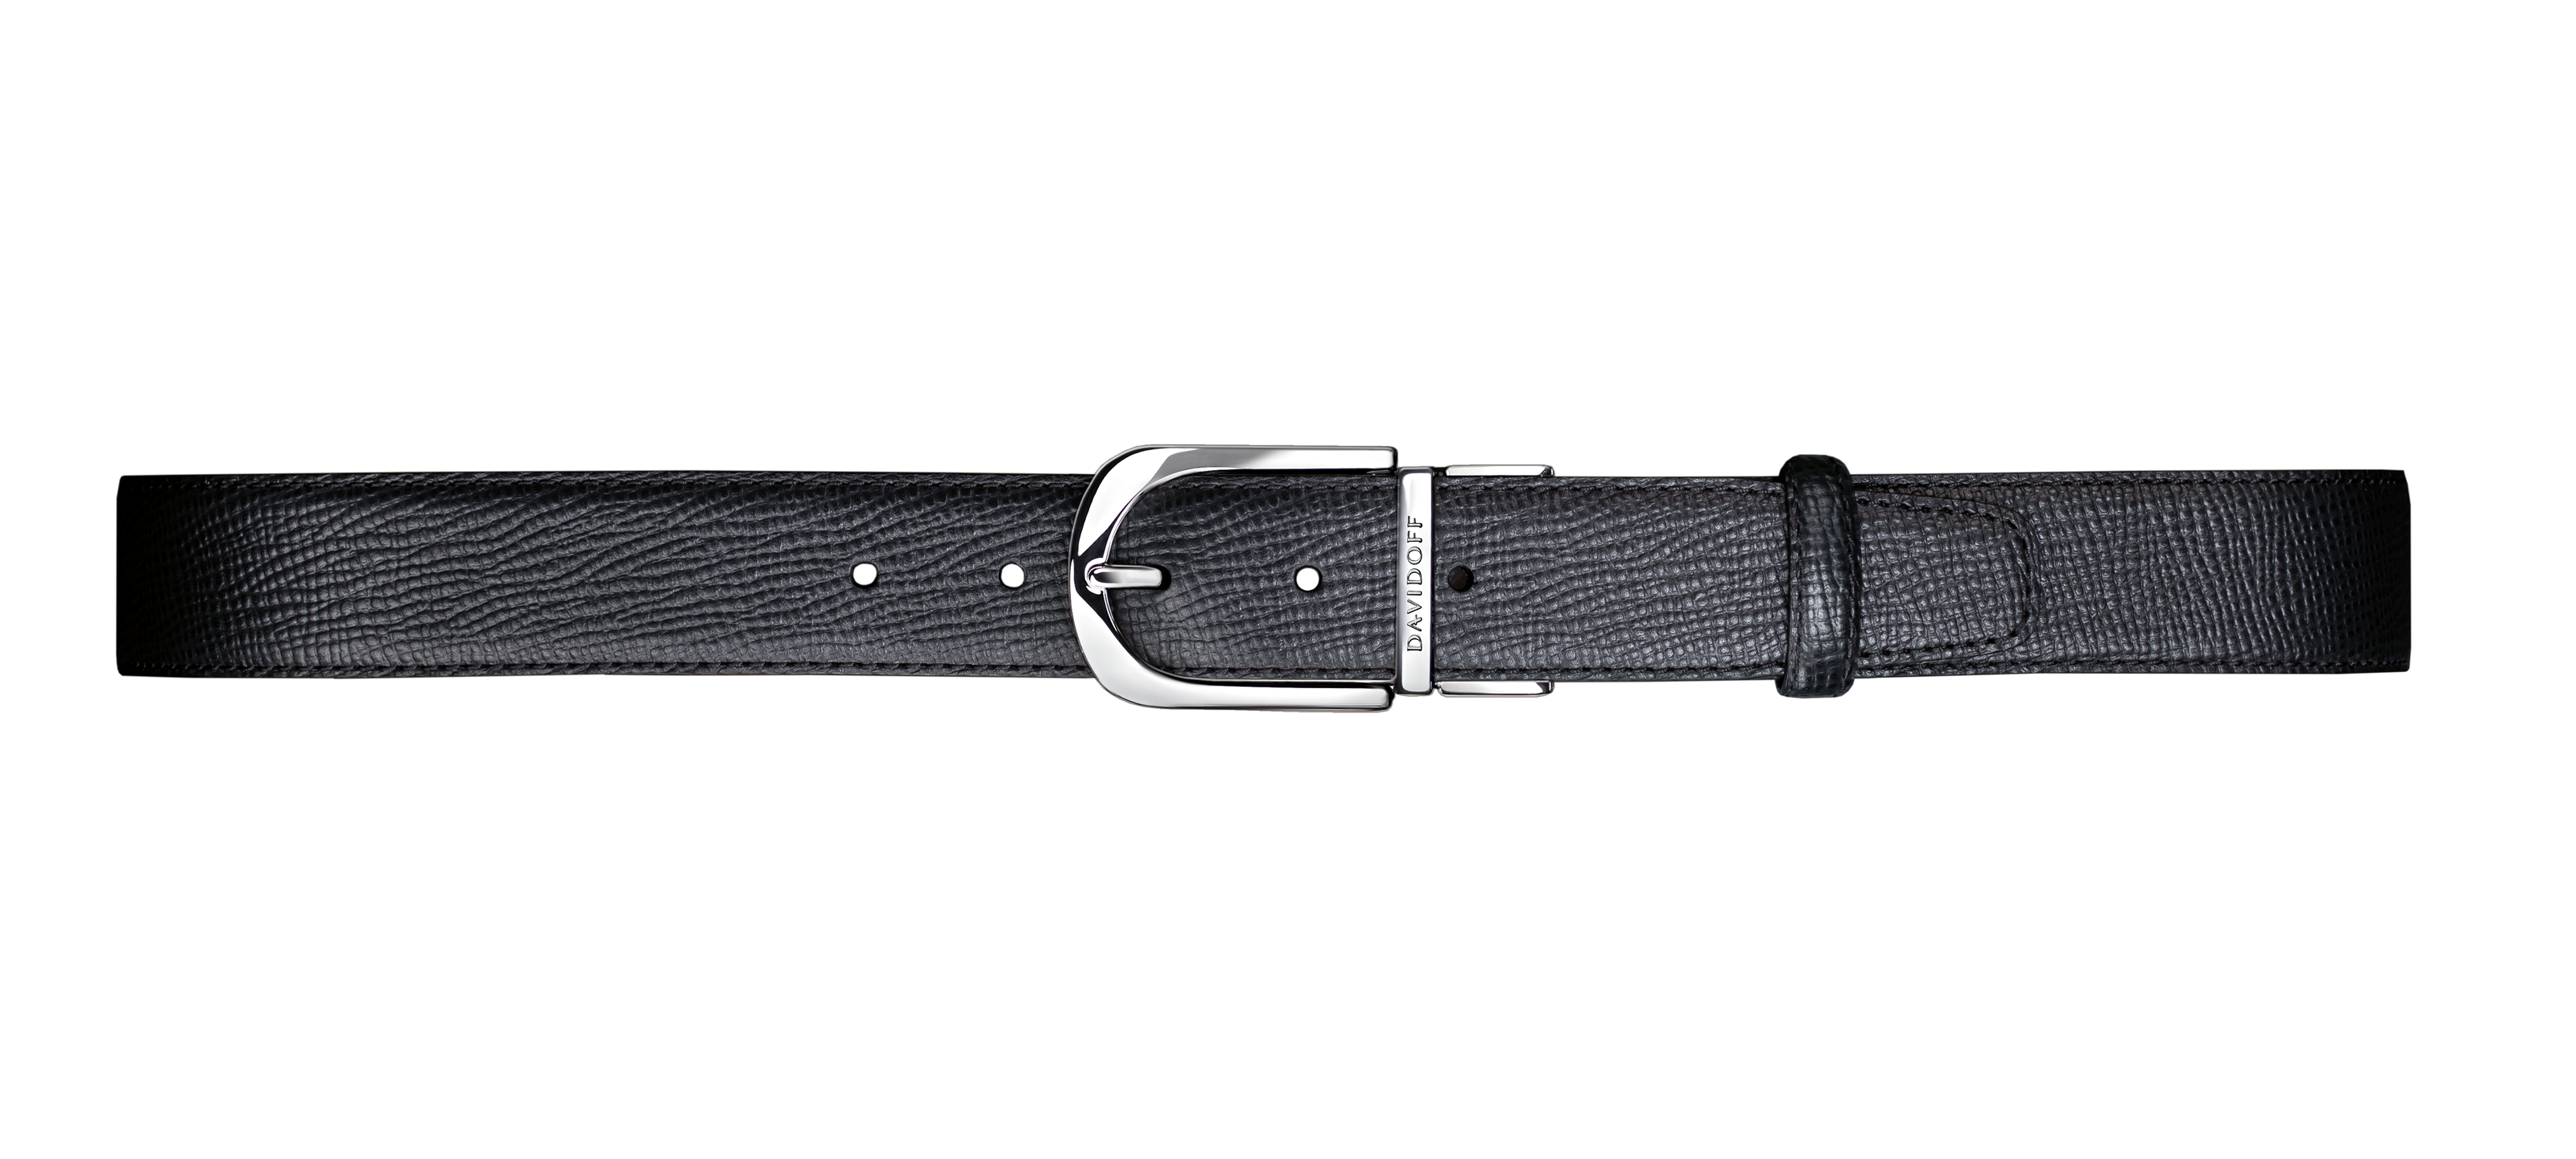 jpg stock With texture png image. Belt clipart leather strap.